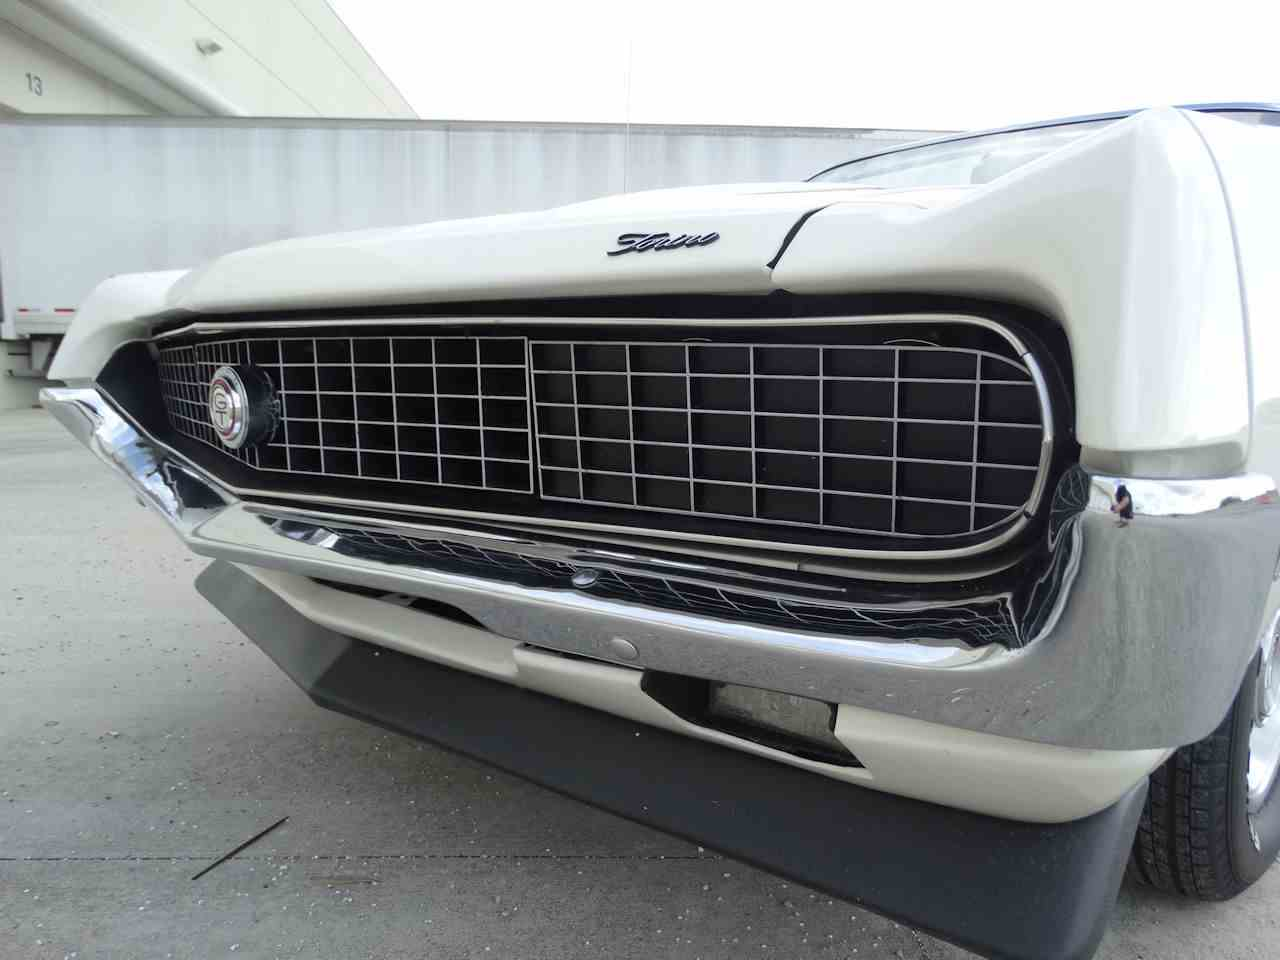 Large Picture of 1971 Torino located in Florida - $68,000.00 Offered by Gateway Classic Cars - Fort Lauderdale - LG4B